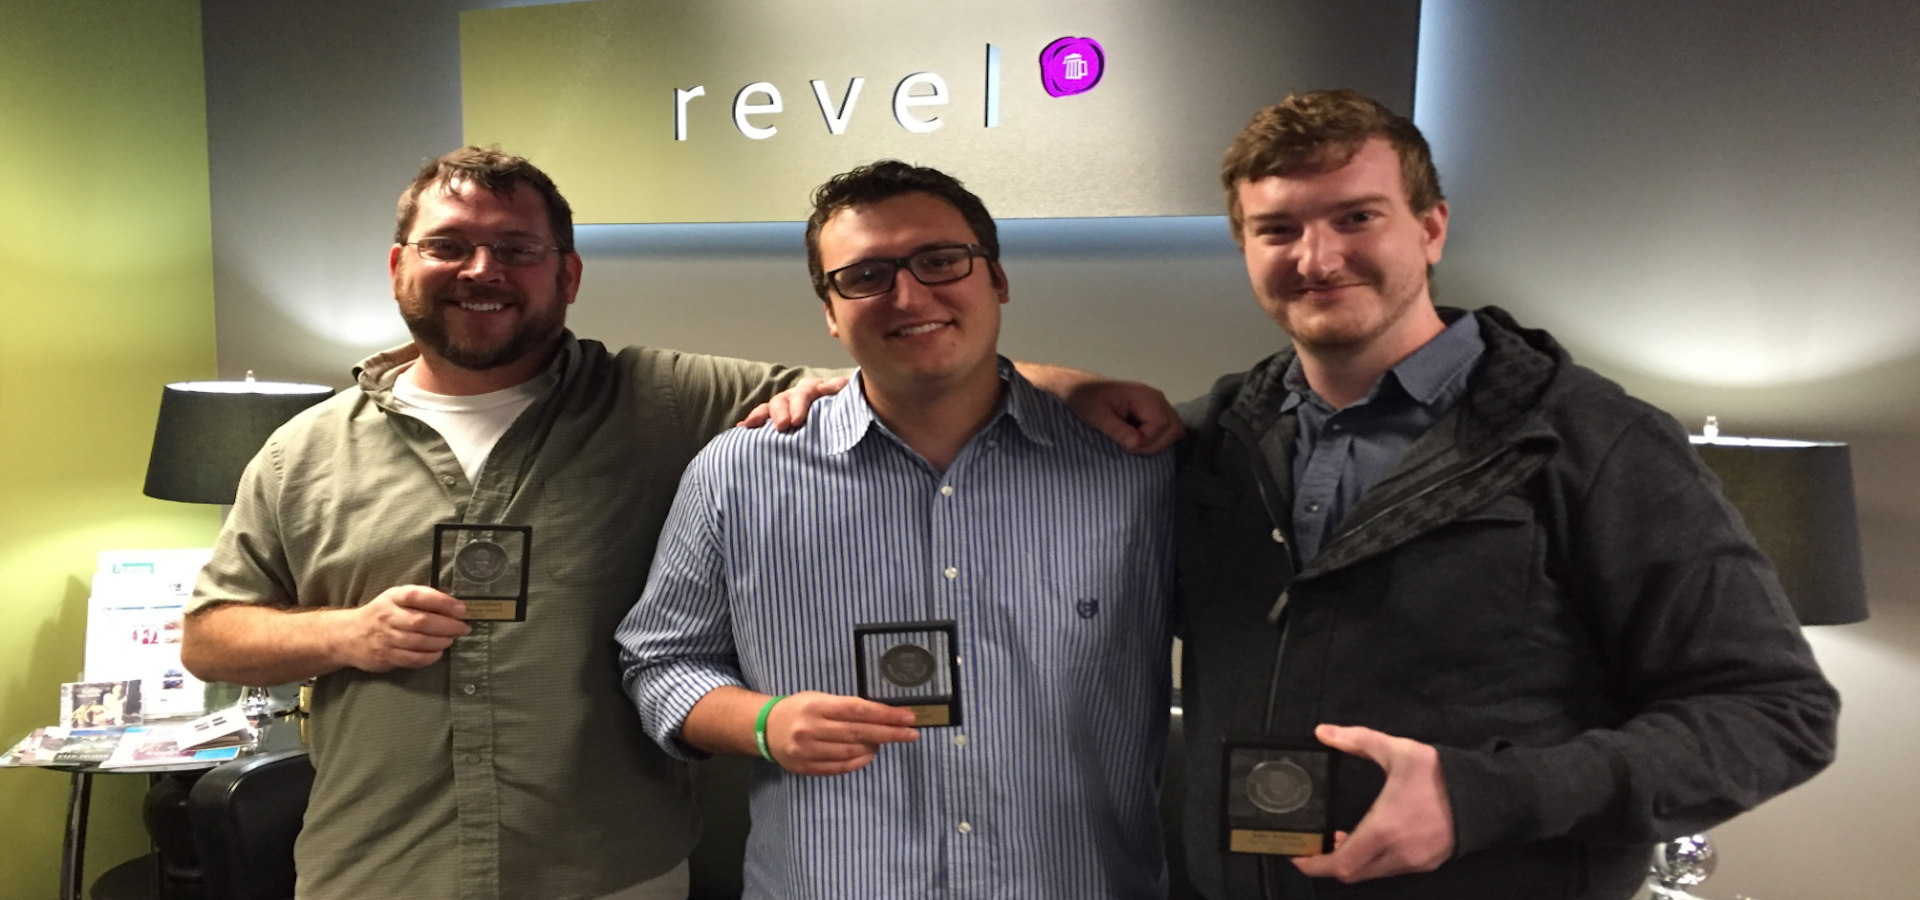 The First Annual Revel Awards